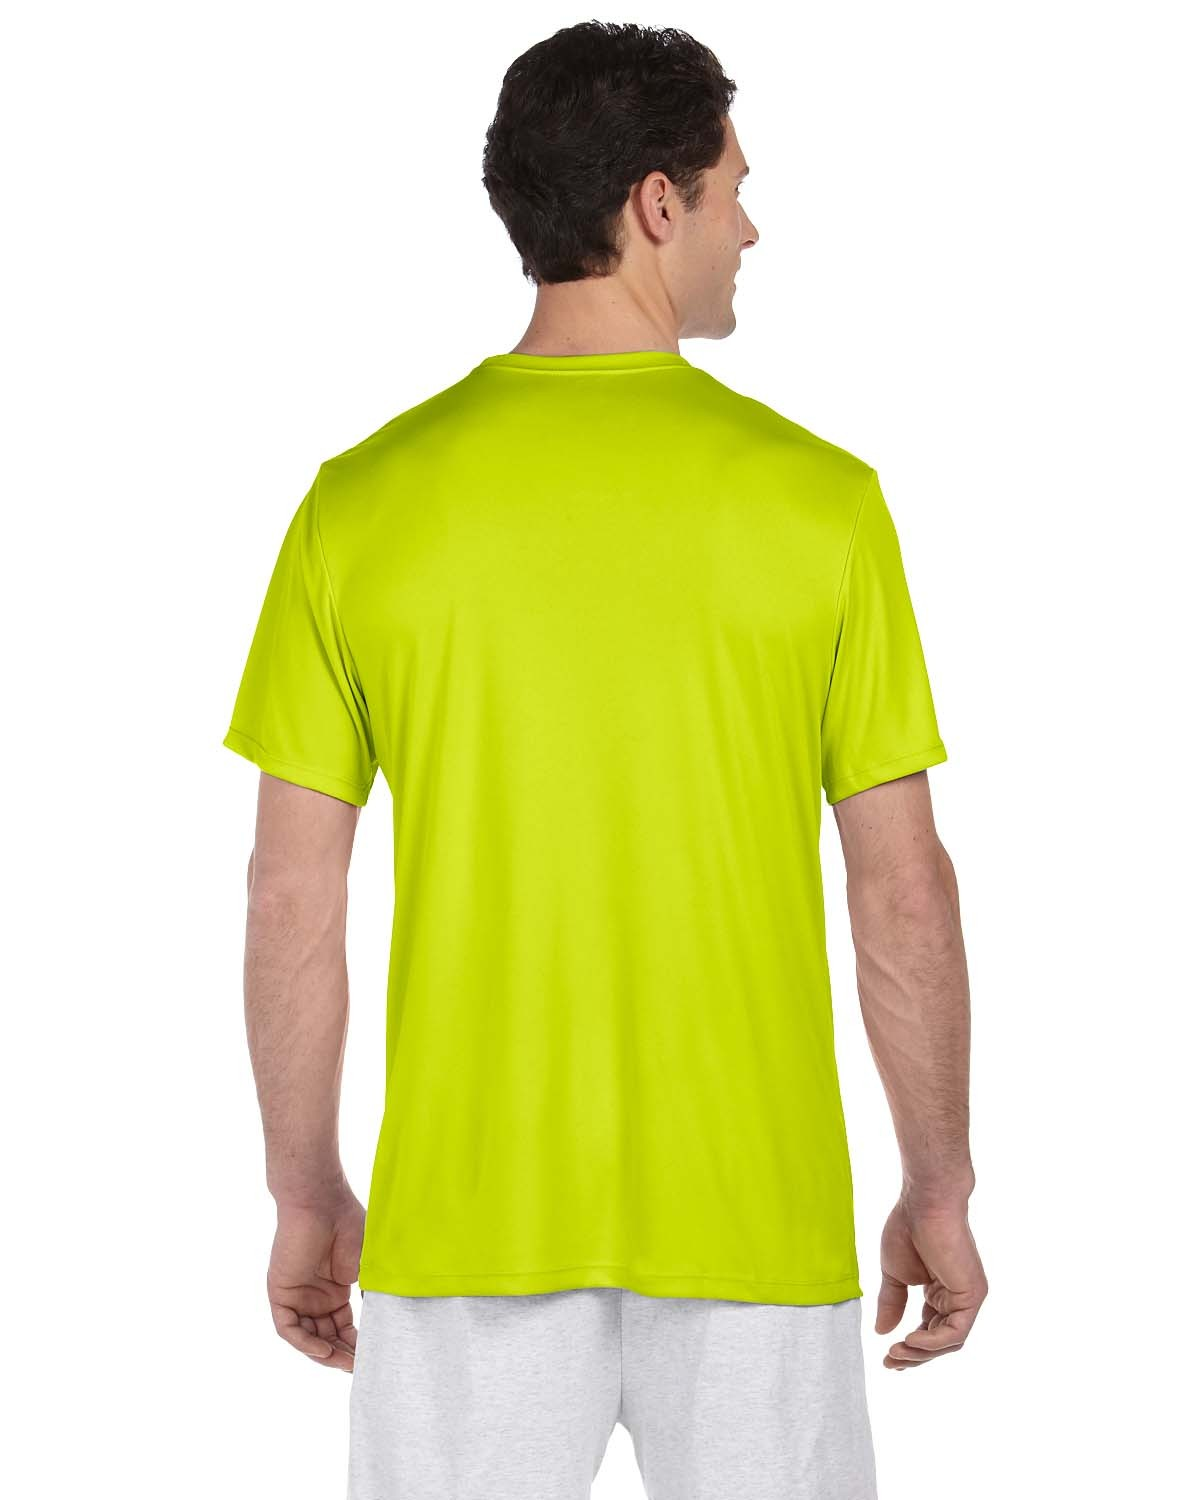 4820 Hanes SAFETY GREEN